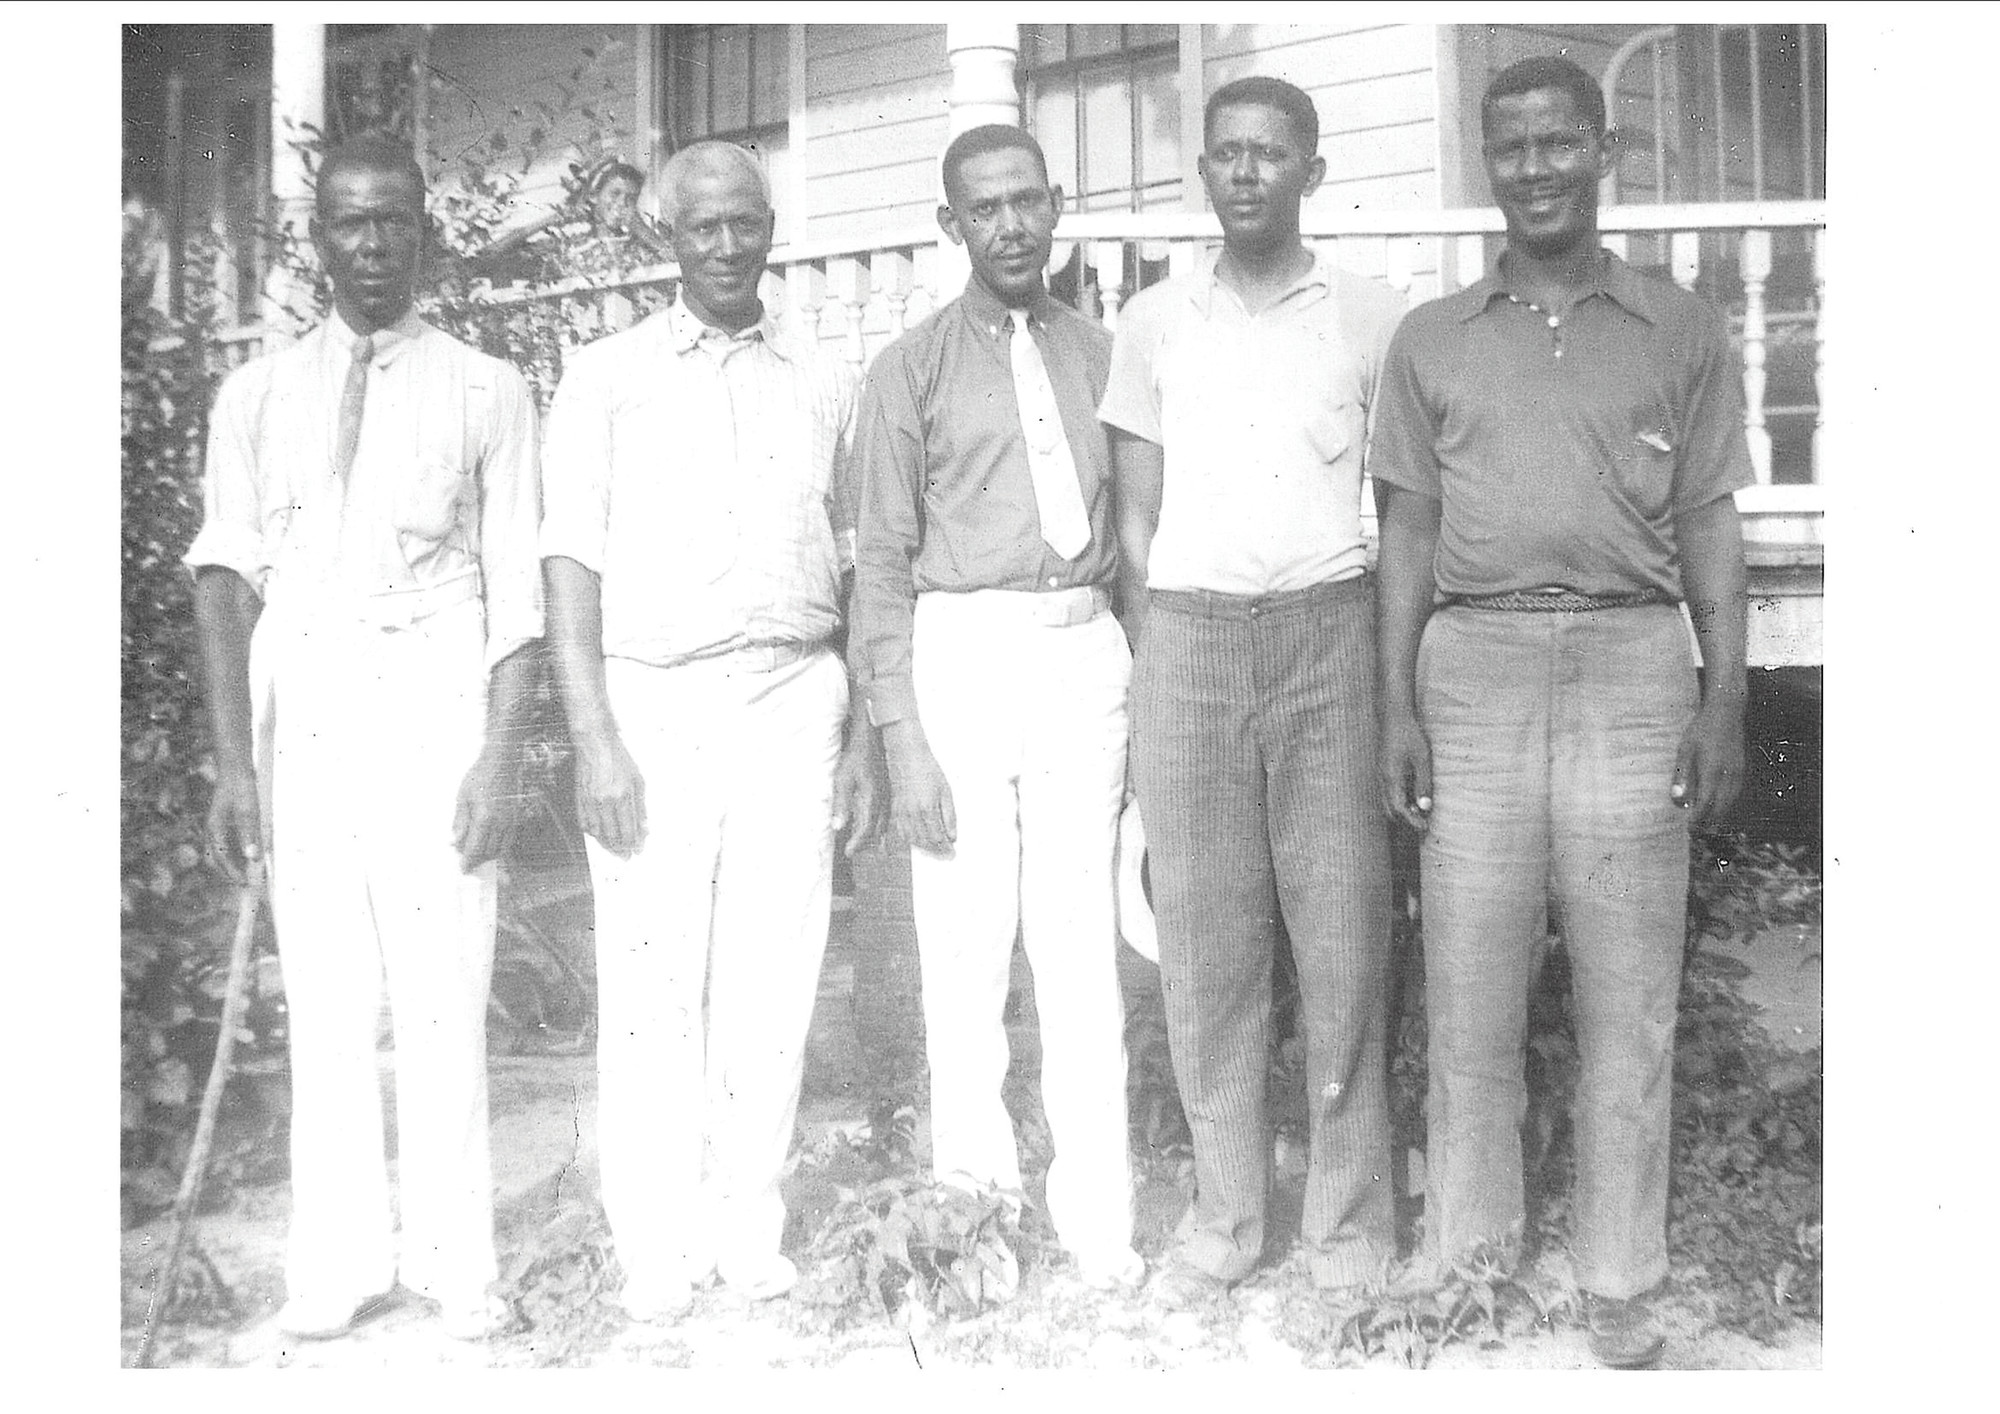 Dr. B. T. Williams is seen third from left with his brothers. Williams is remembered as a professional who helped those in need in Sumter. He died at age 71.